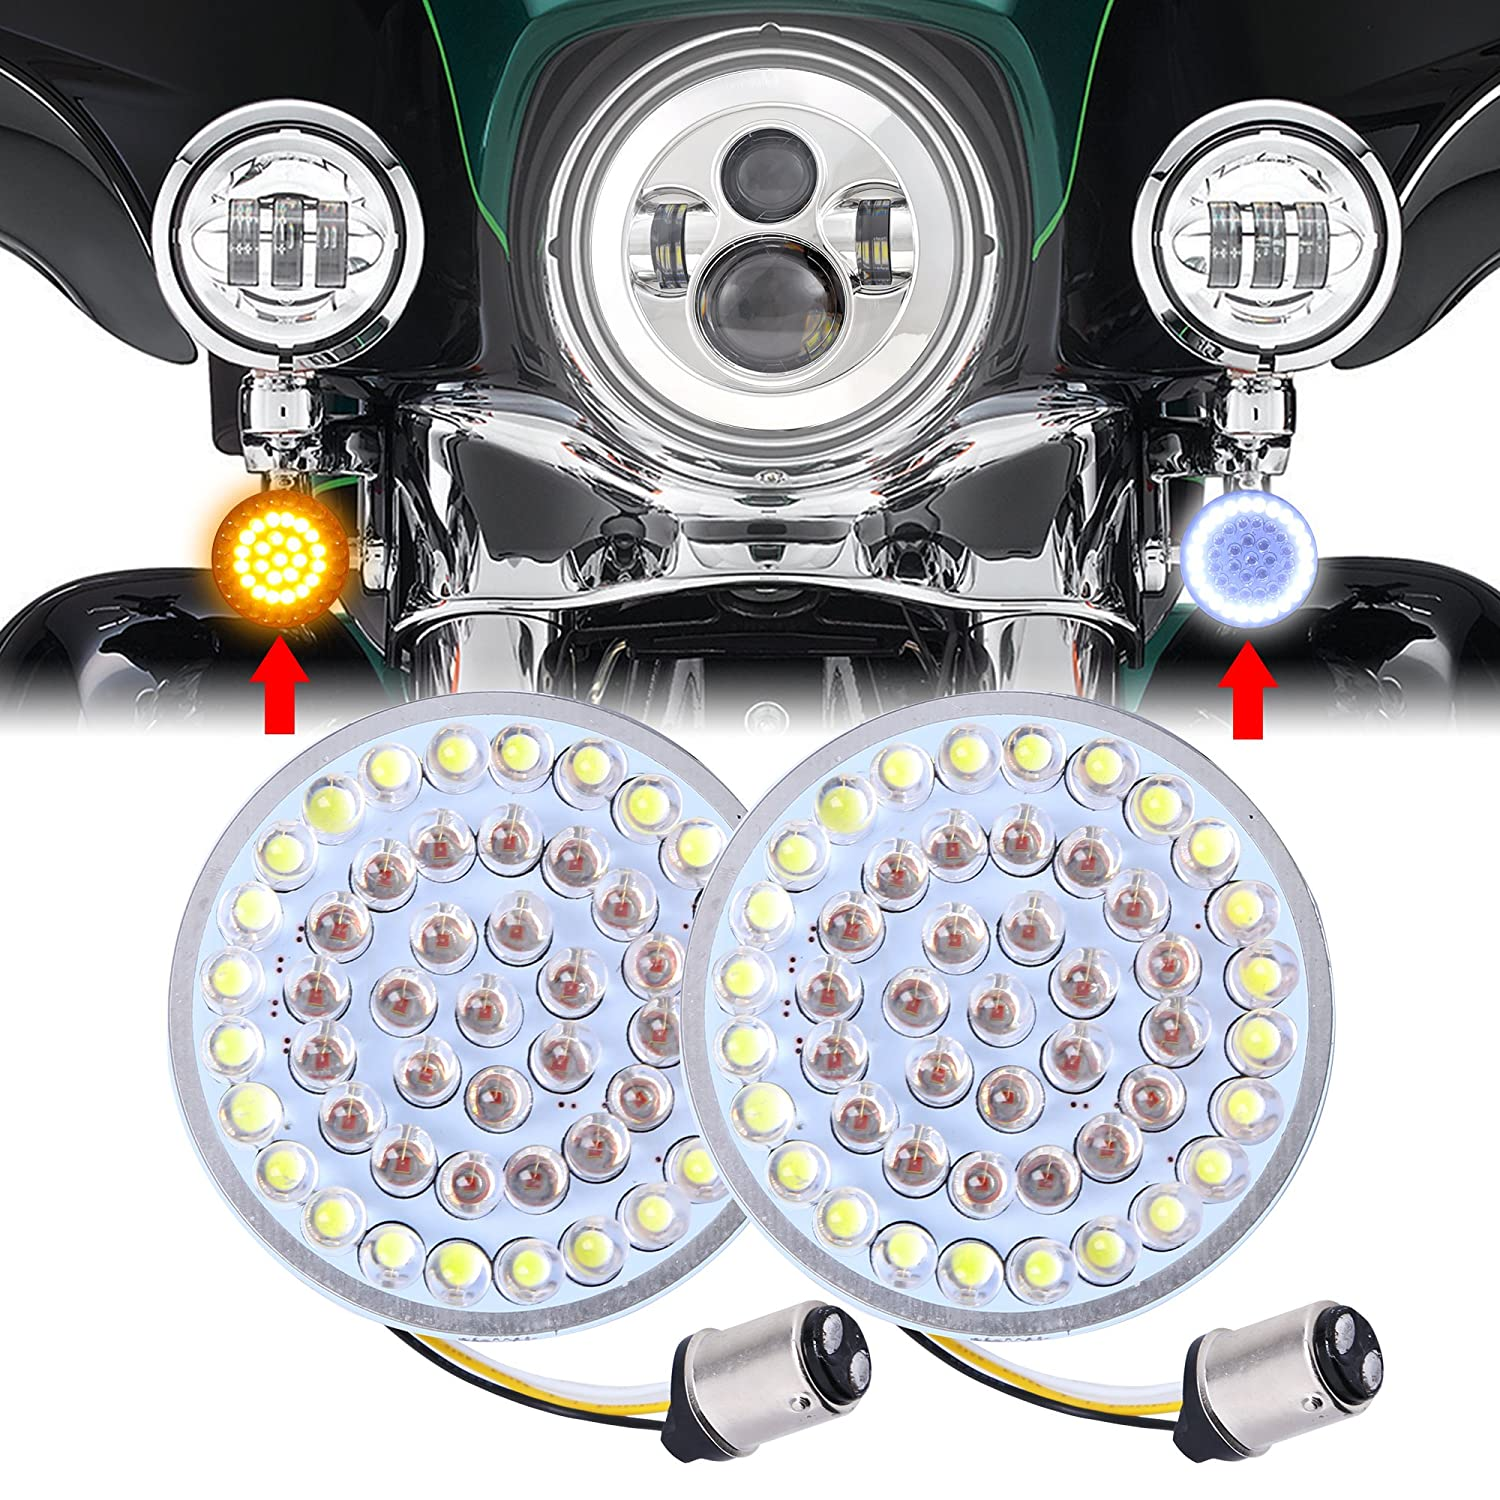 Pair Motorcycle 2inch Bullet Style 1157 White DRL Amber Turn Signal LED Inserts For Harley Softail 2011-2017 Dyna 2012-2017 Sportster Touring 2014-2017 Audexen